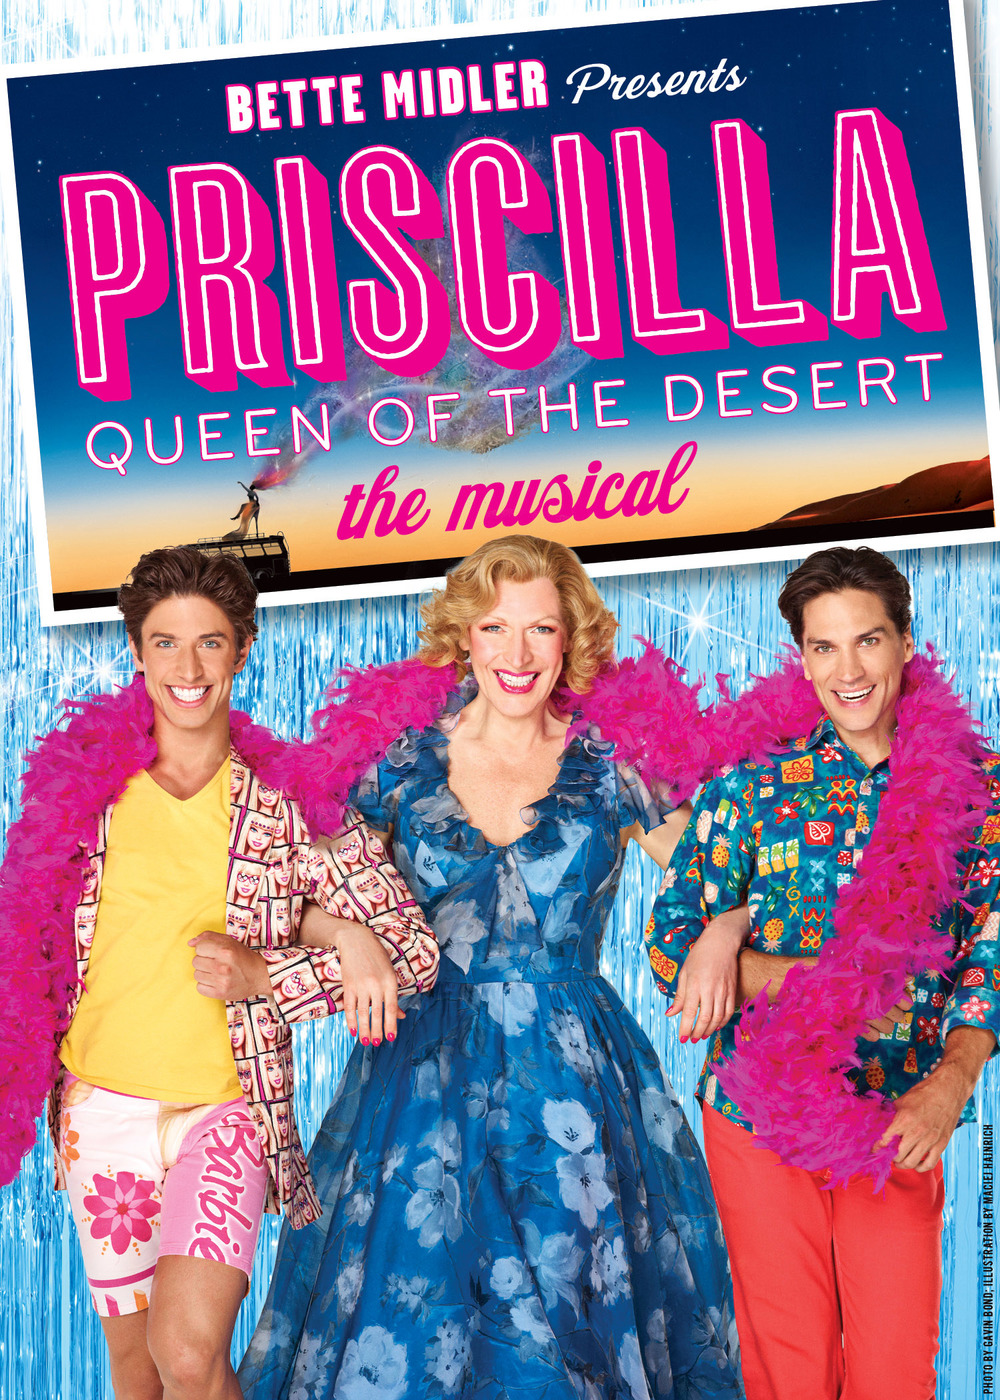 08.15.11-Priscilla-new-key-art-three-friends.jpg